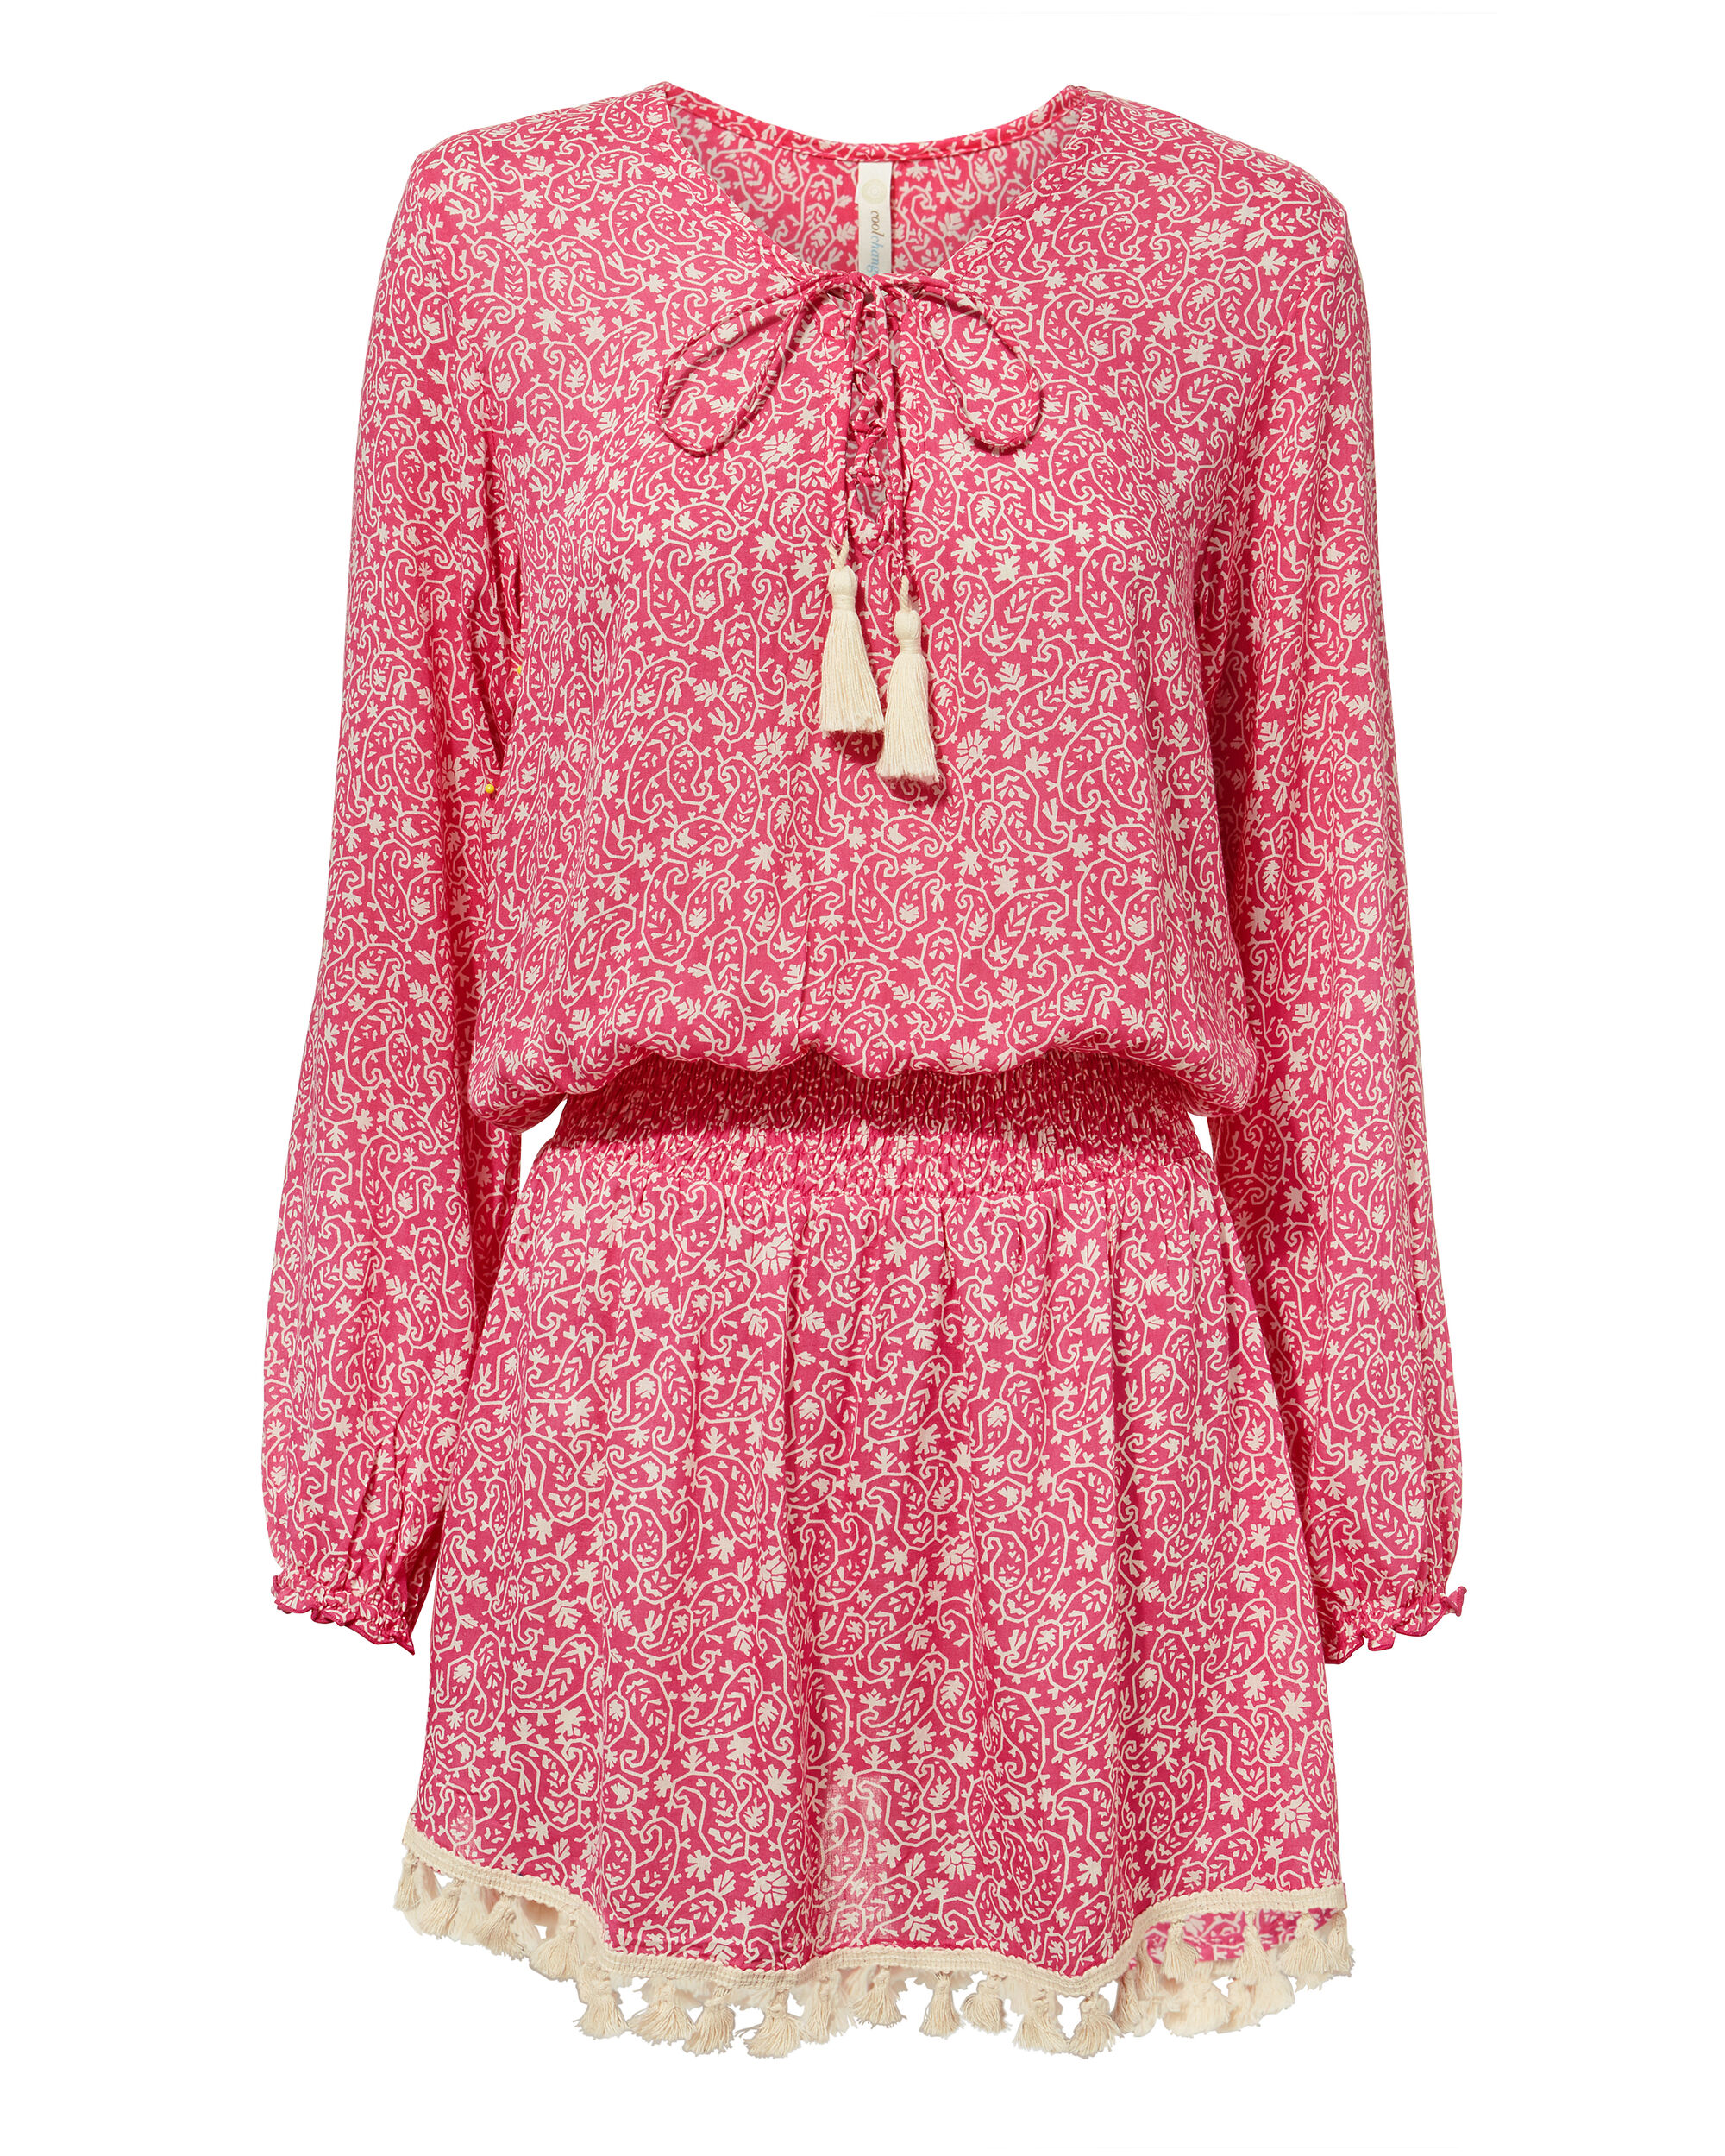 Eden Paisley Dress, PINK, hi-res